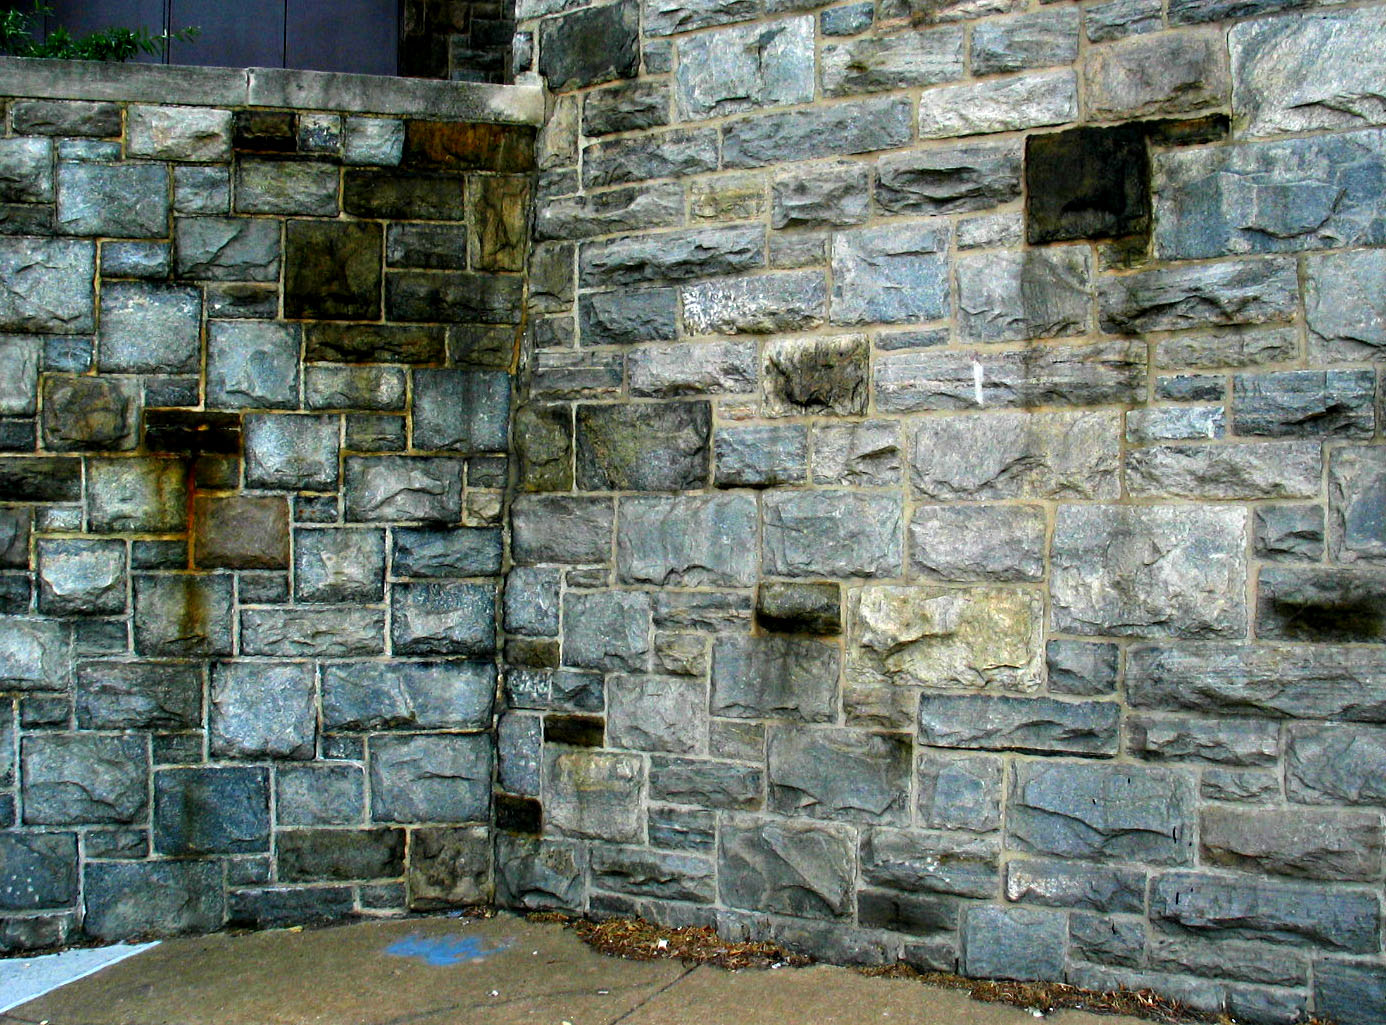 Granite Building Blocks : Stone granite blocks building walls weathered stained